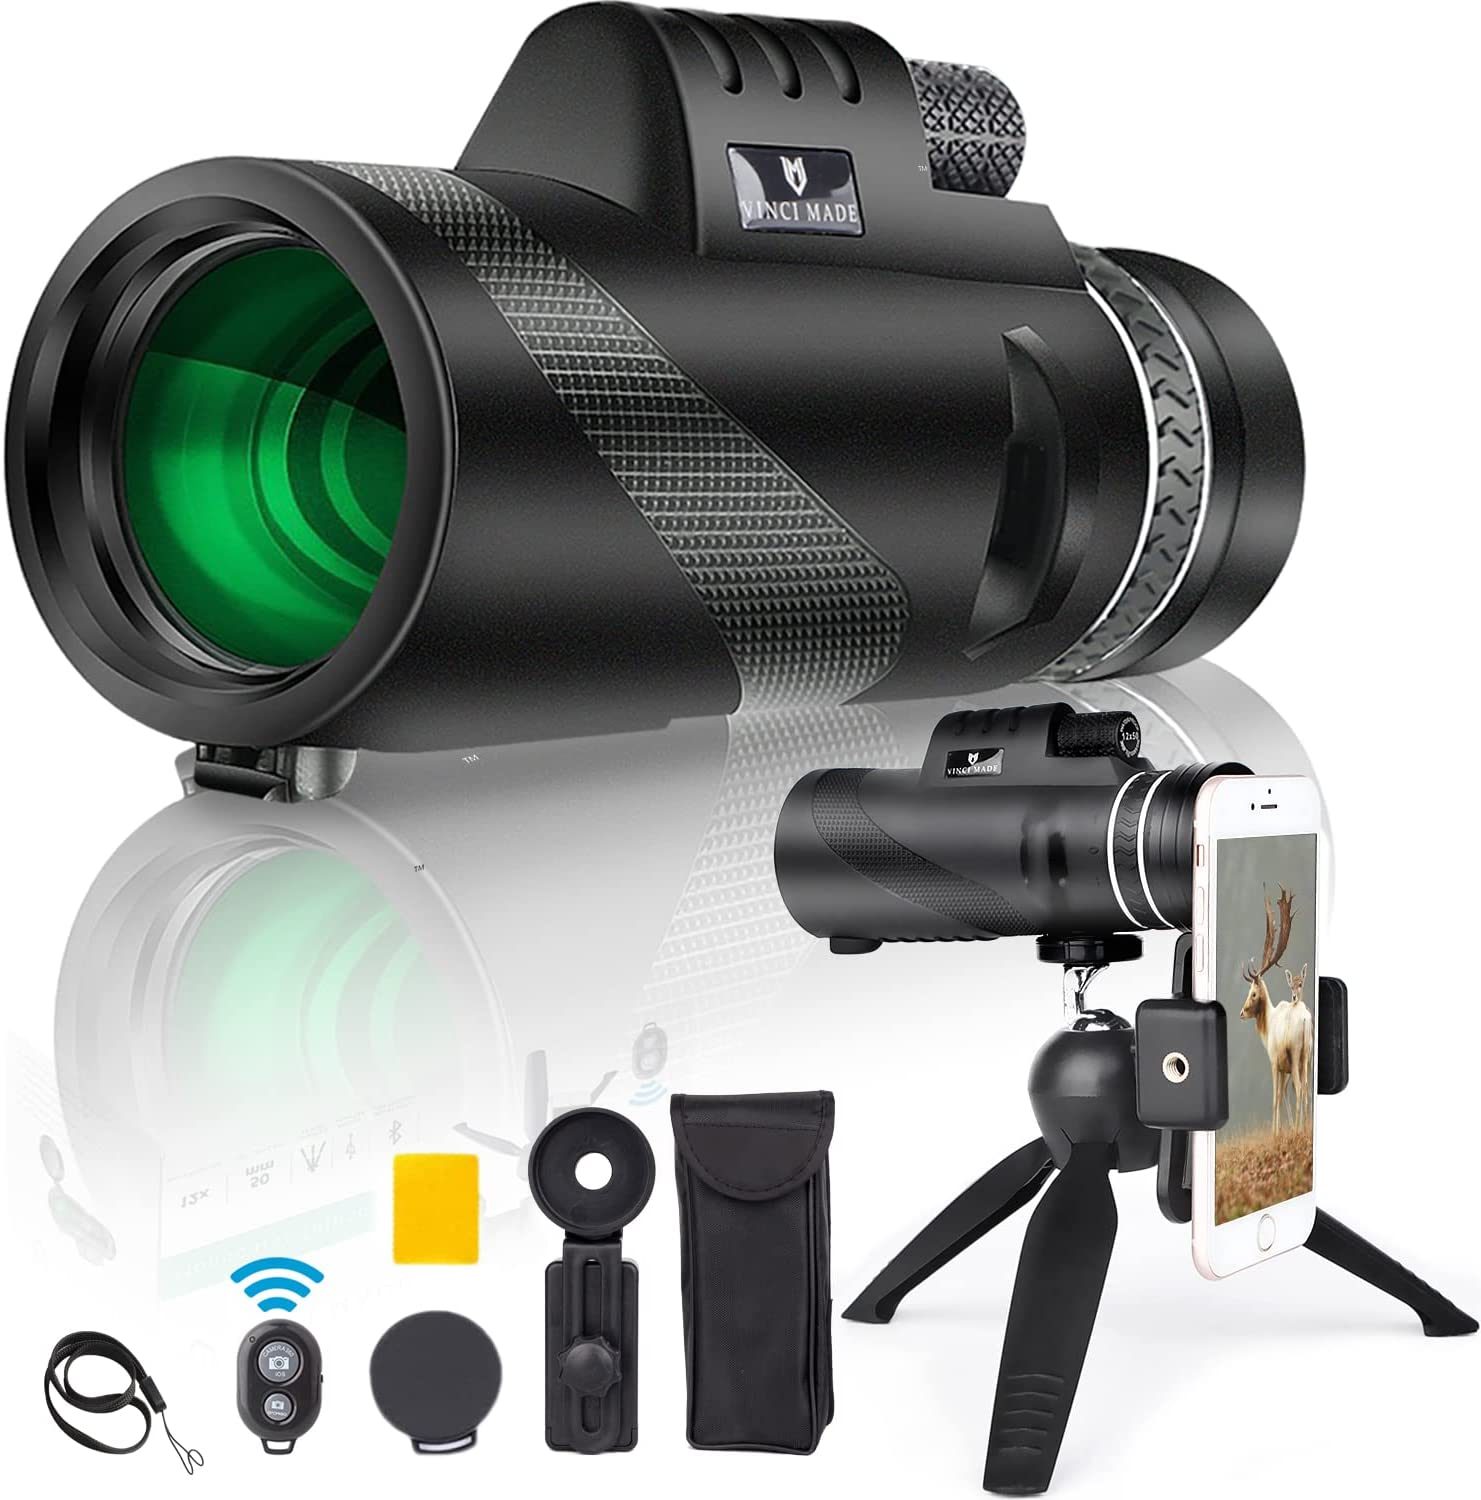 Vinci Made 12X50 Monocular Telescope for Smartphone with Upgraded Tripod & Shutter - High Power Monocular Telescope for Adults - Compact High Definition Monocular Scope for Bird Watching Hunting : Electronics